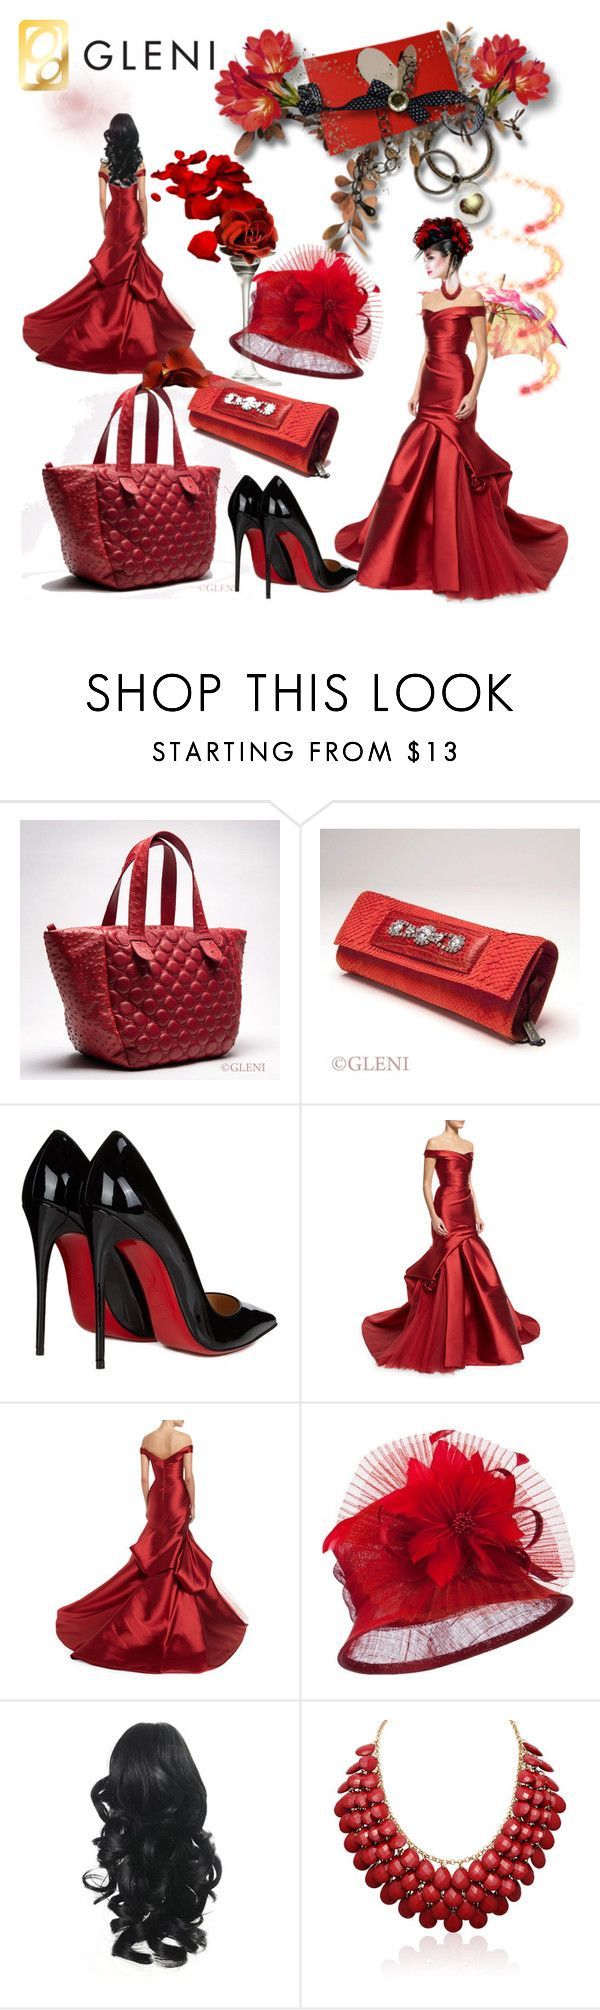 """""""Gleni boutique"""" by irinavsl ❤ liked on Polyvore featuring Christian Louboutin, Monique Lhuillier, gleni and gleniboutique"""